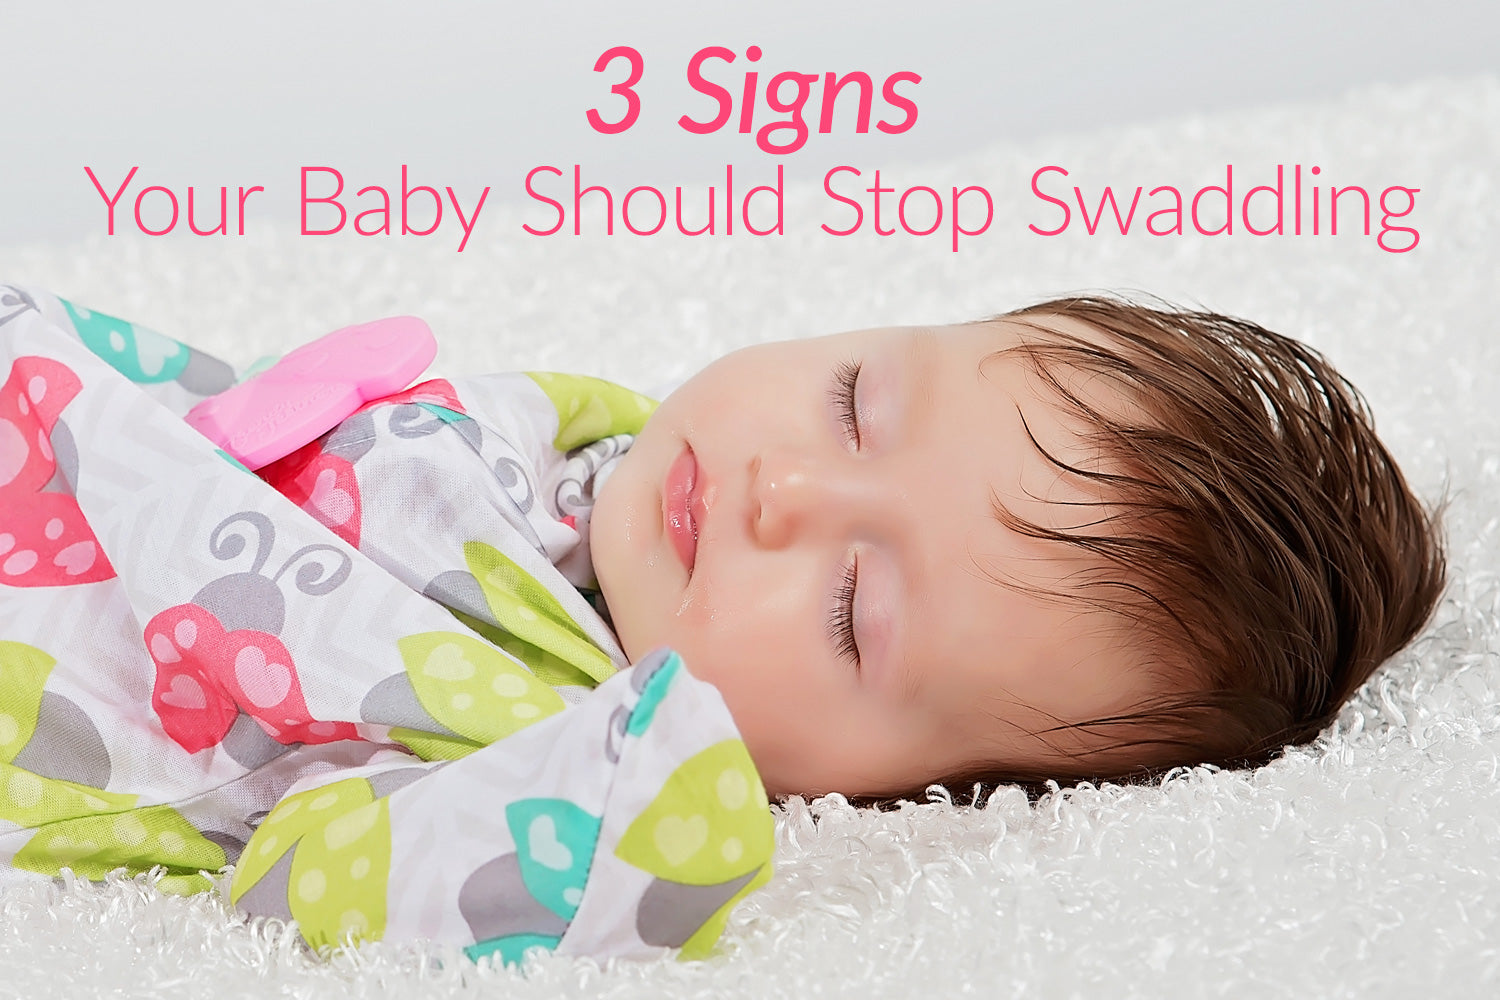 3 Signs that Baby is Ready for Swaddle Transition